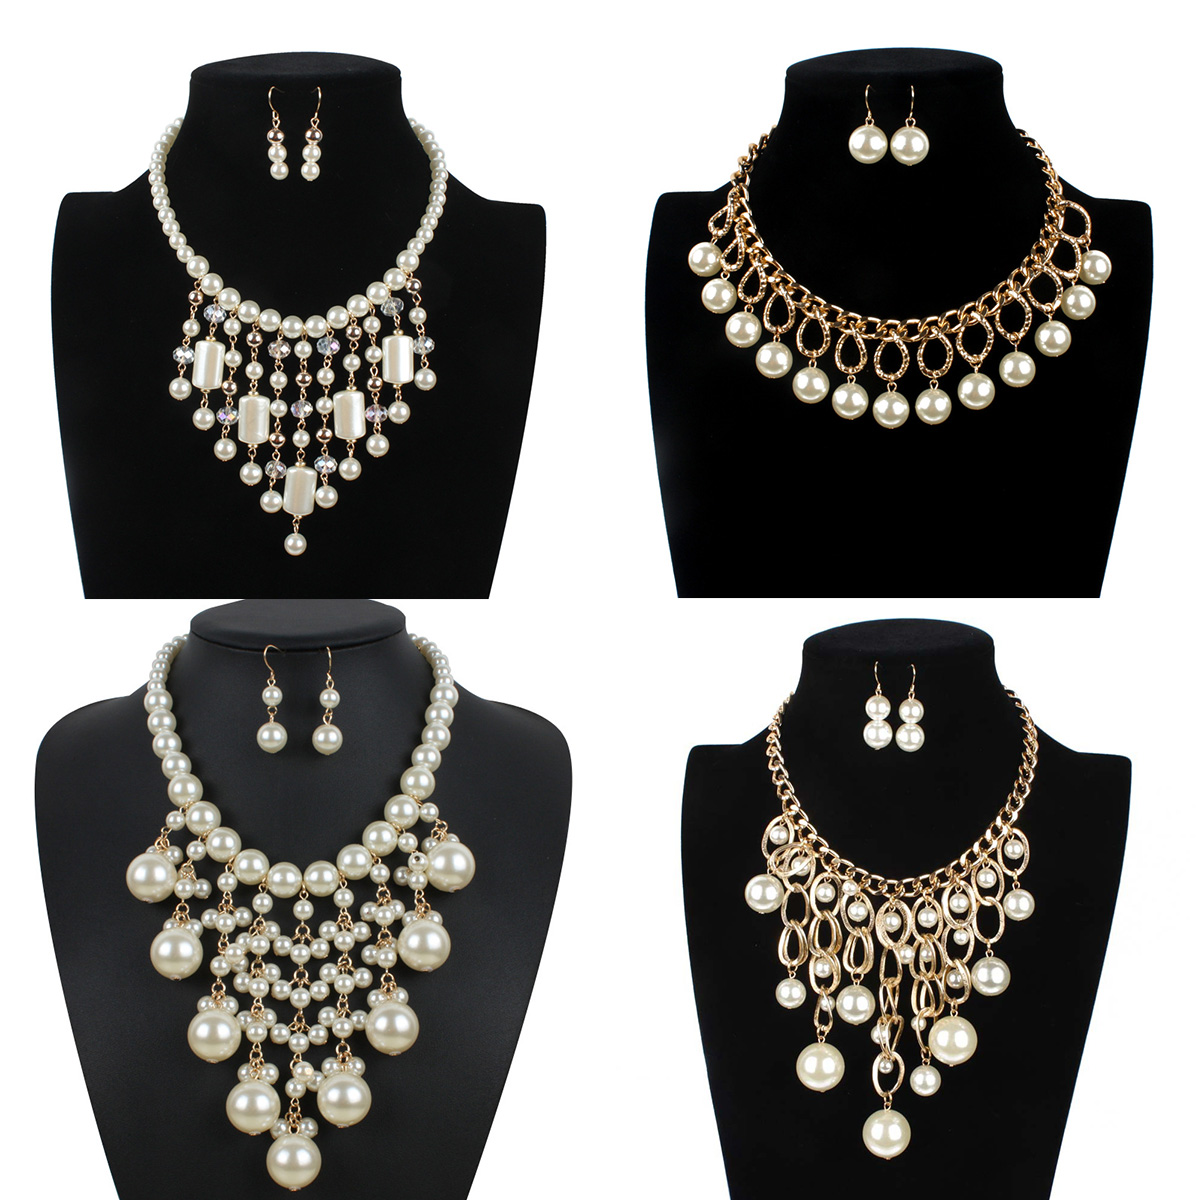 Fashion Choker Necklace Imitation Pearl Beads Fake Collar Statment Necklace Girl